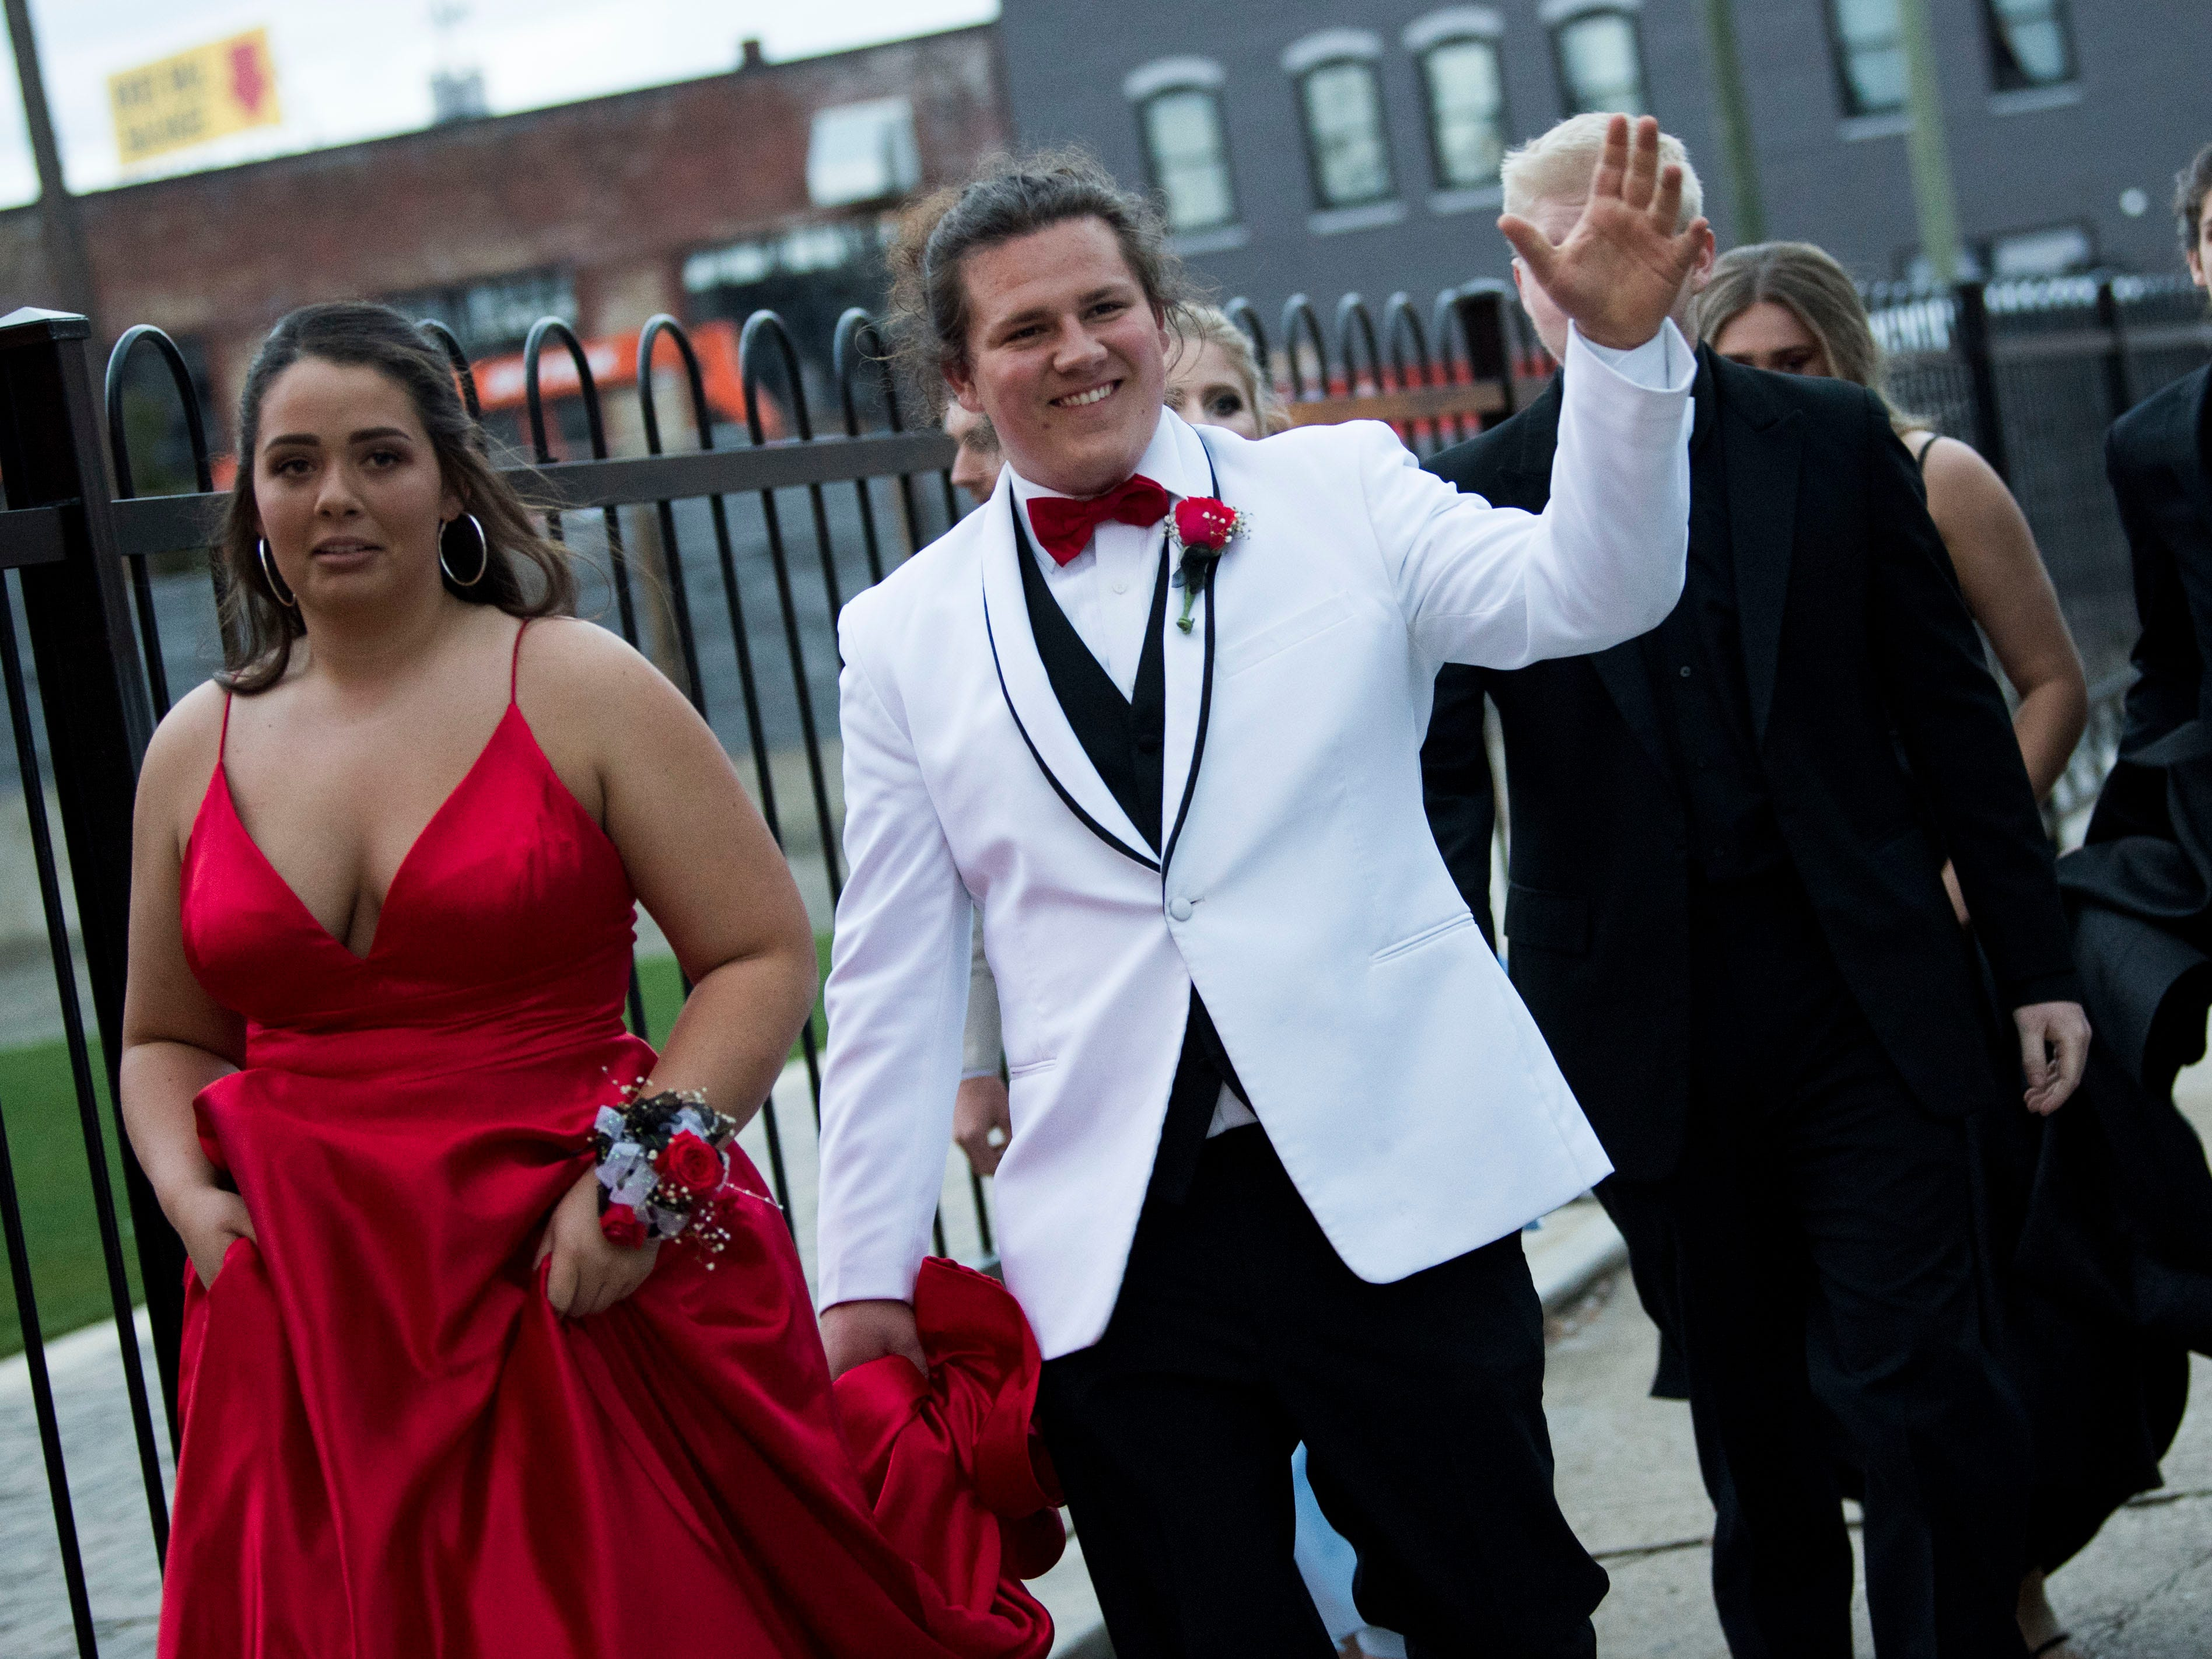 Scenes from Gibb High School's prom held at The Mill & Mine in Knoxville, Tennessee on Friday, April 5, 2019.